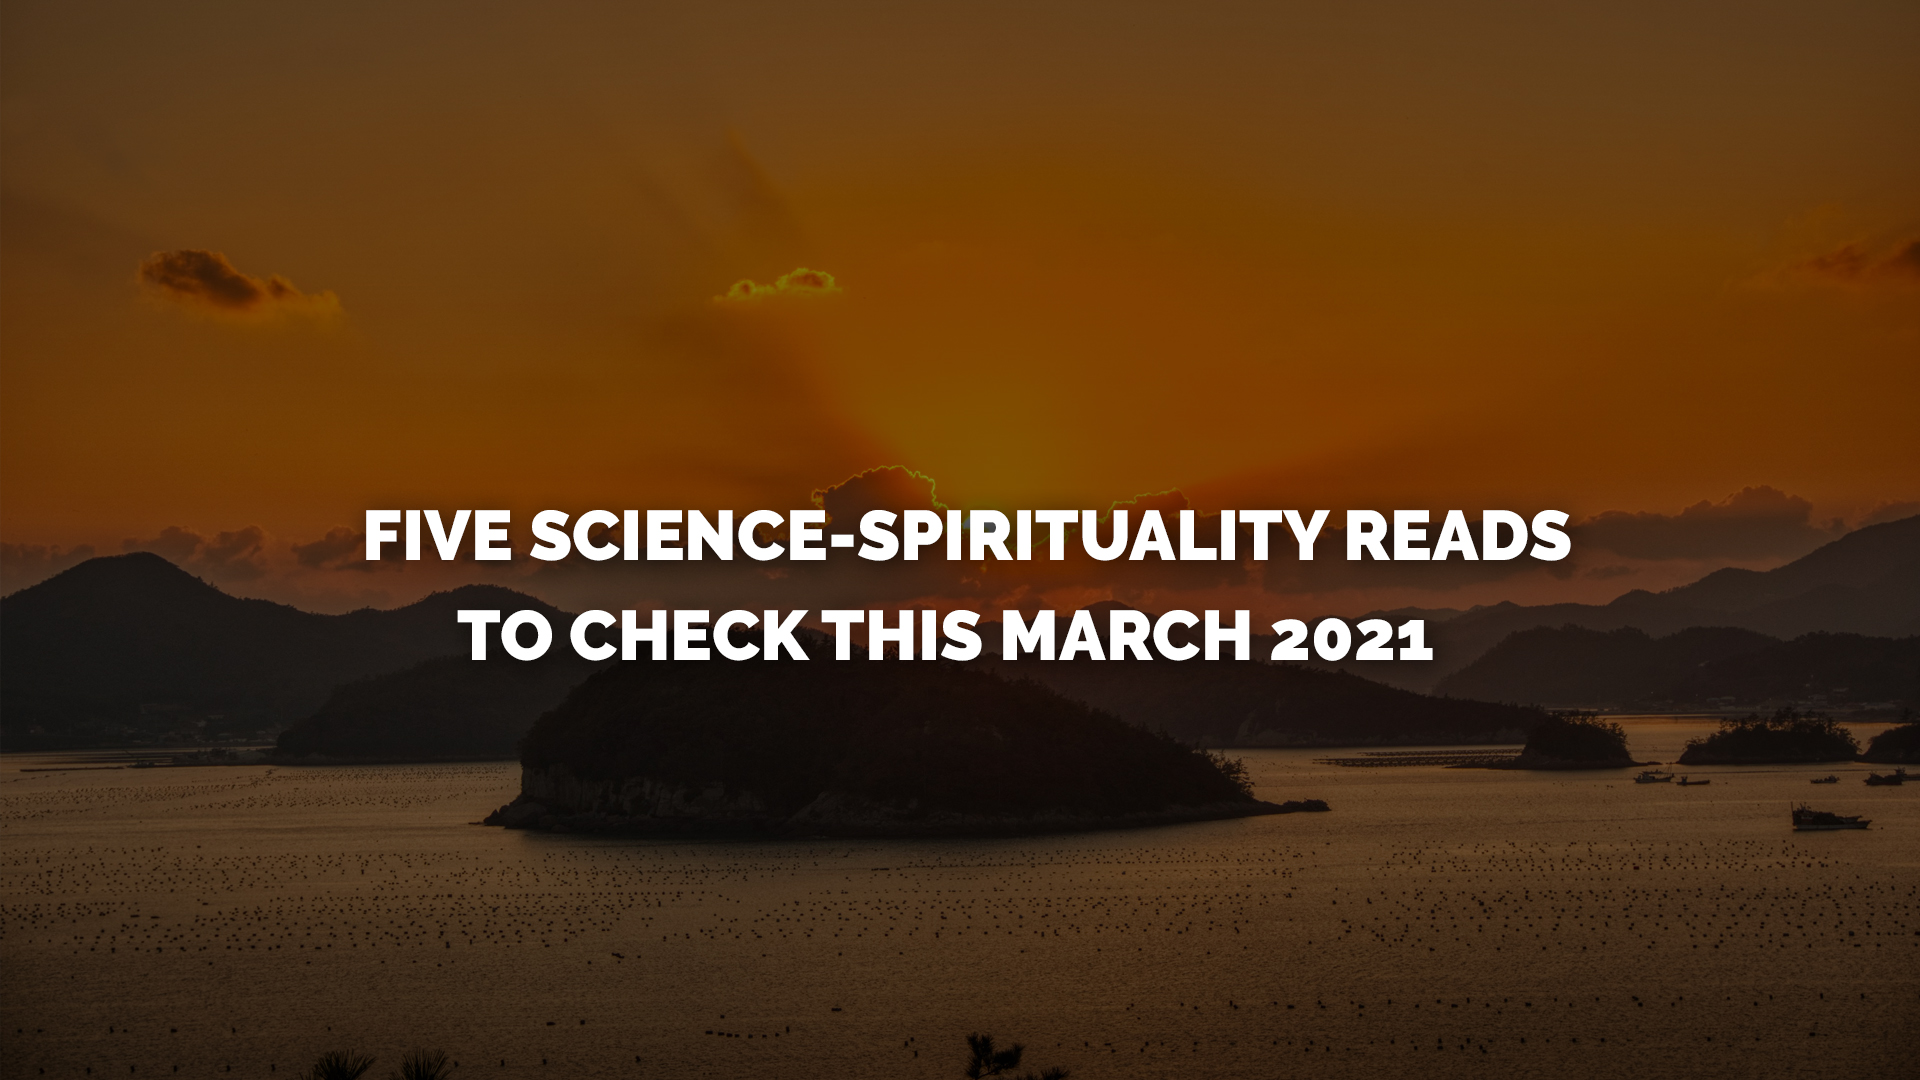 Five Science Spirituality Reads to Check This March 2021 banner